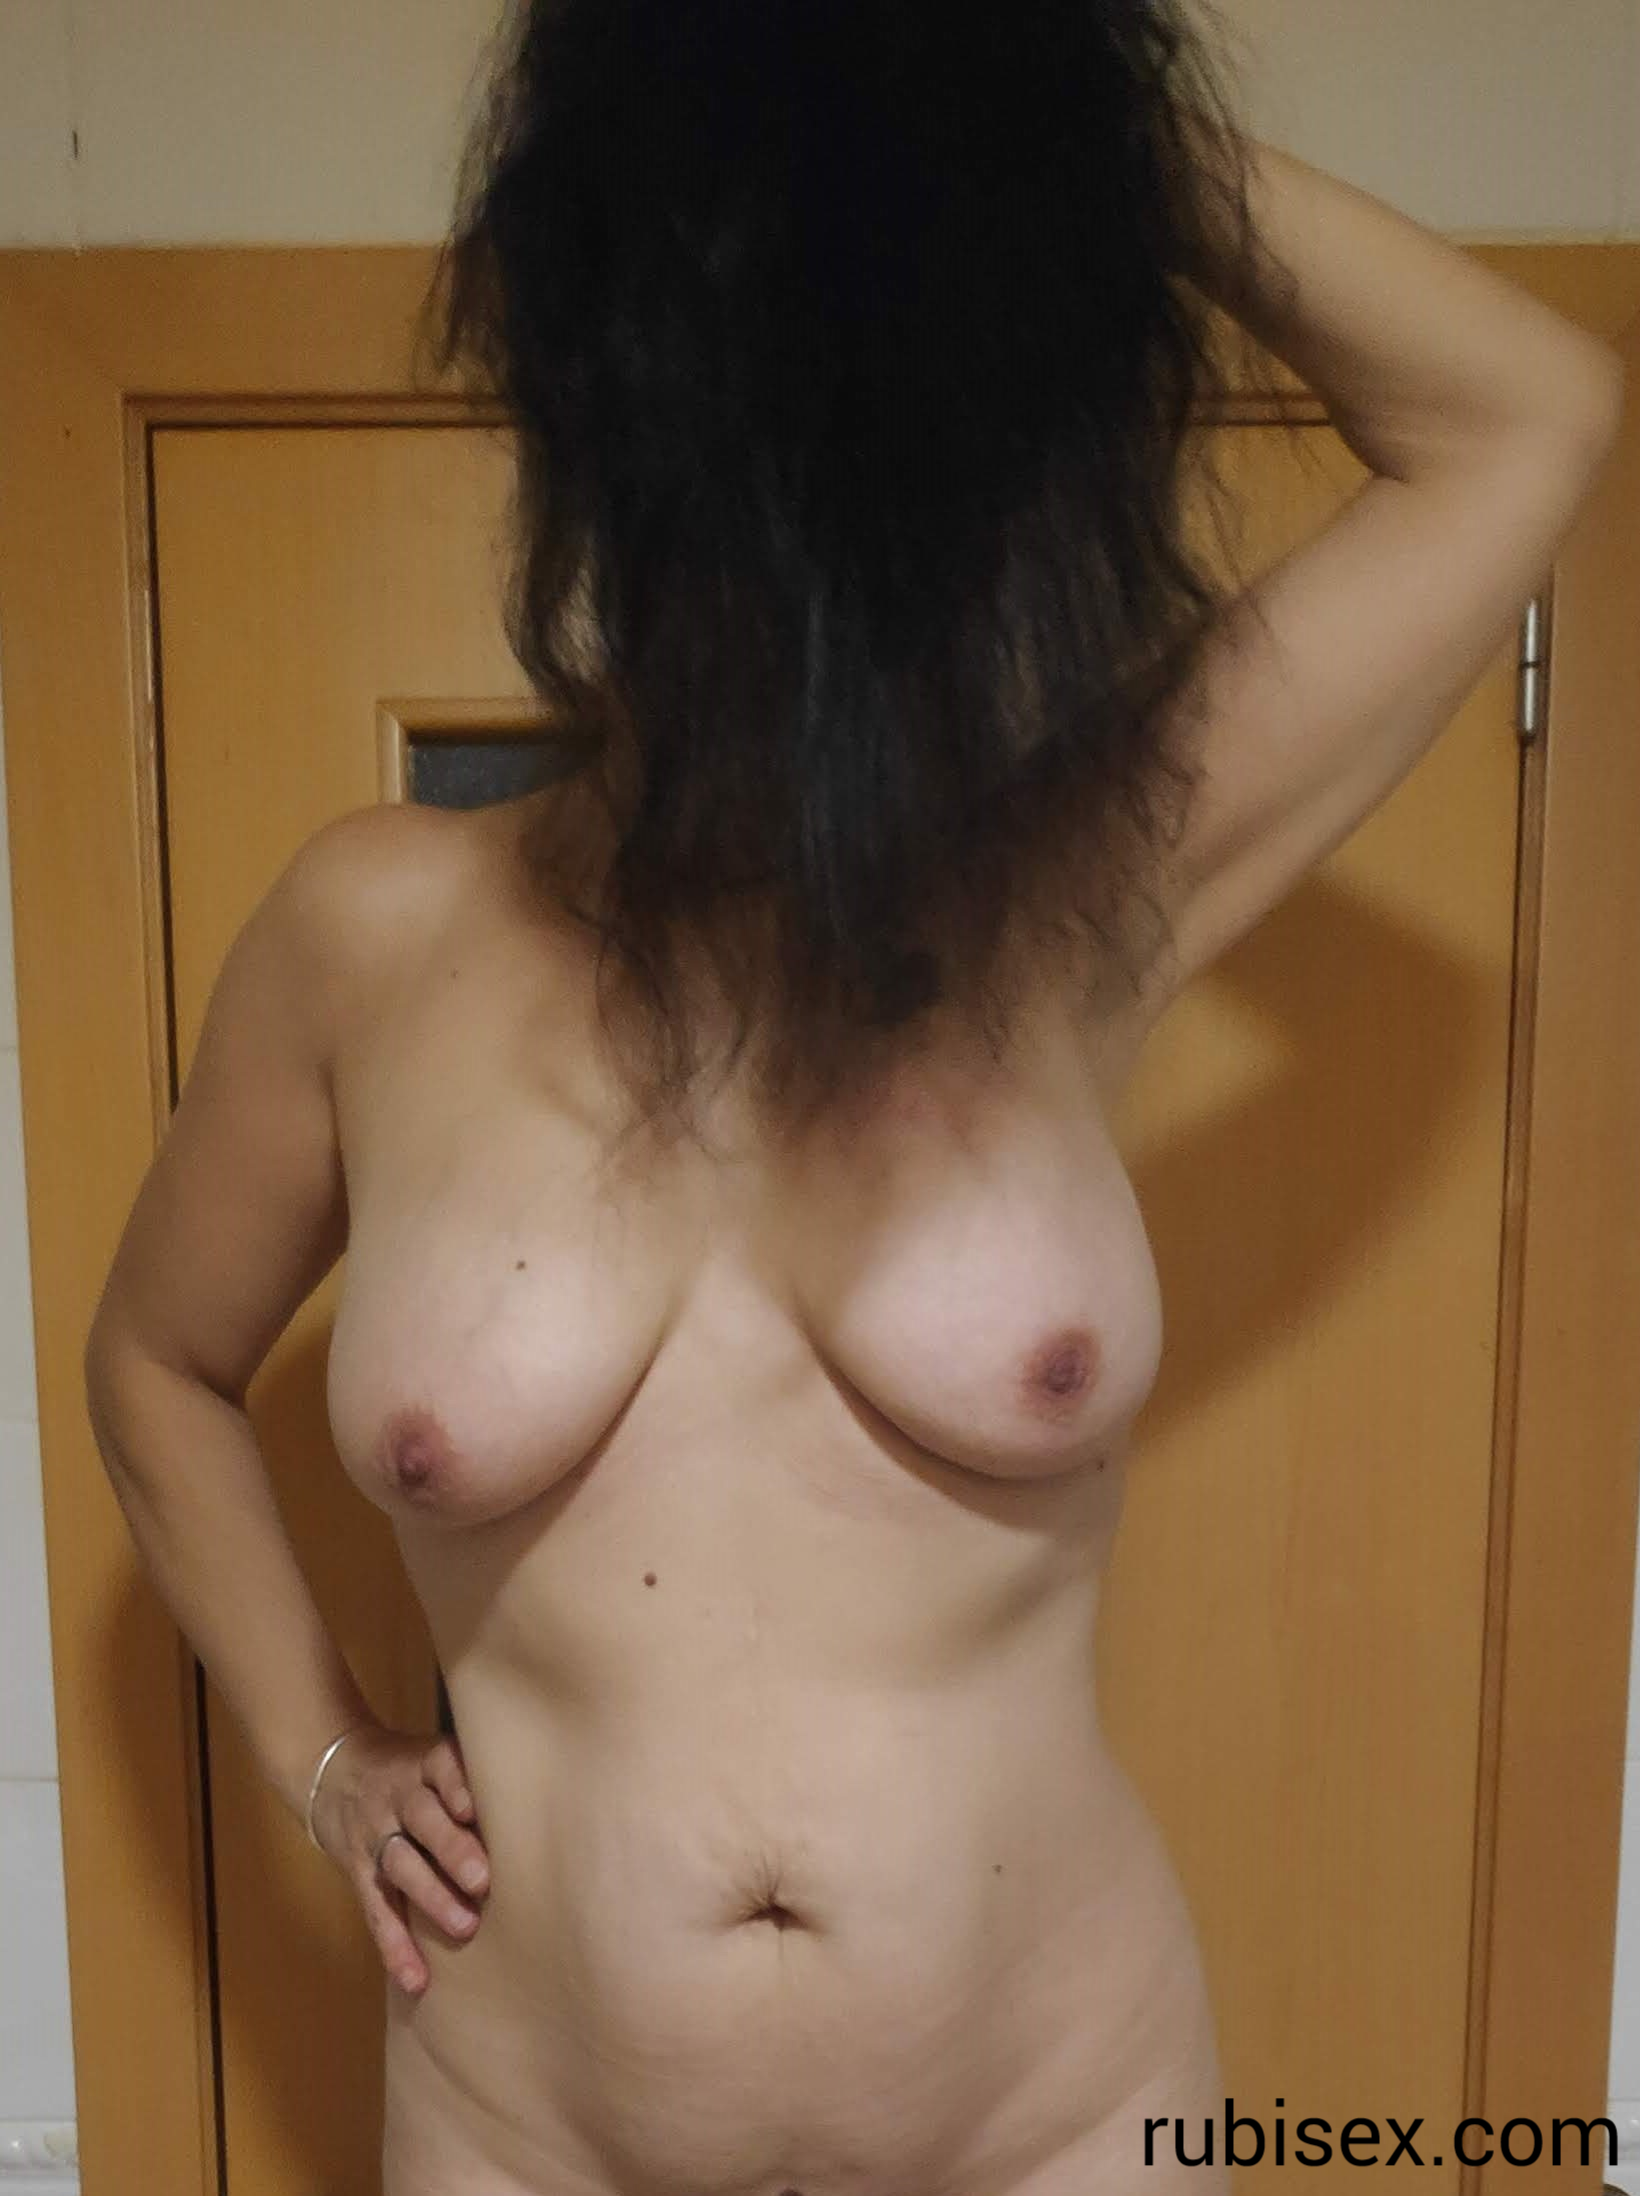 Rubi, 50 Years Old, For All Those Who Enjoy Seeing A Mature Woman I Wait For You…